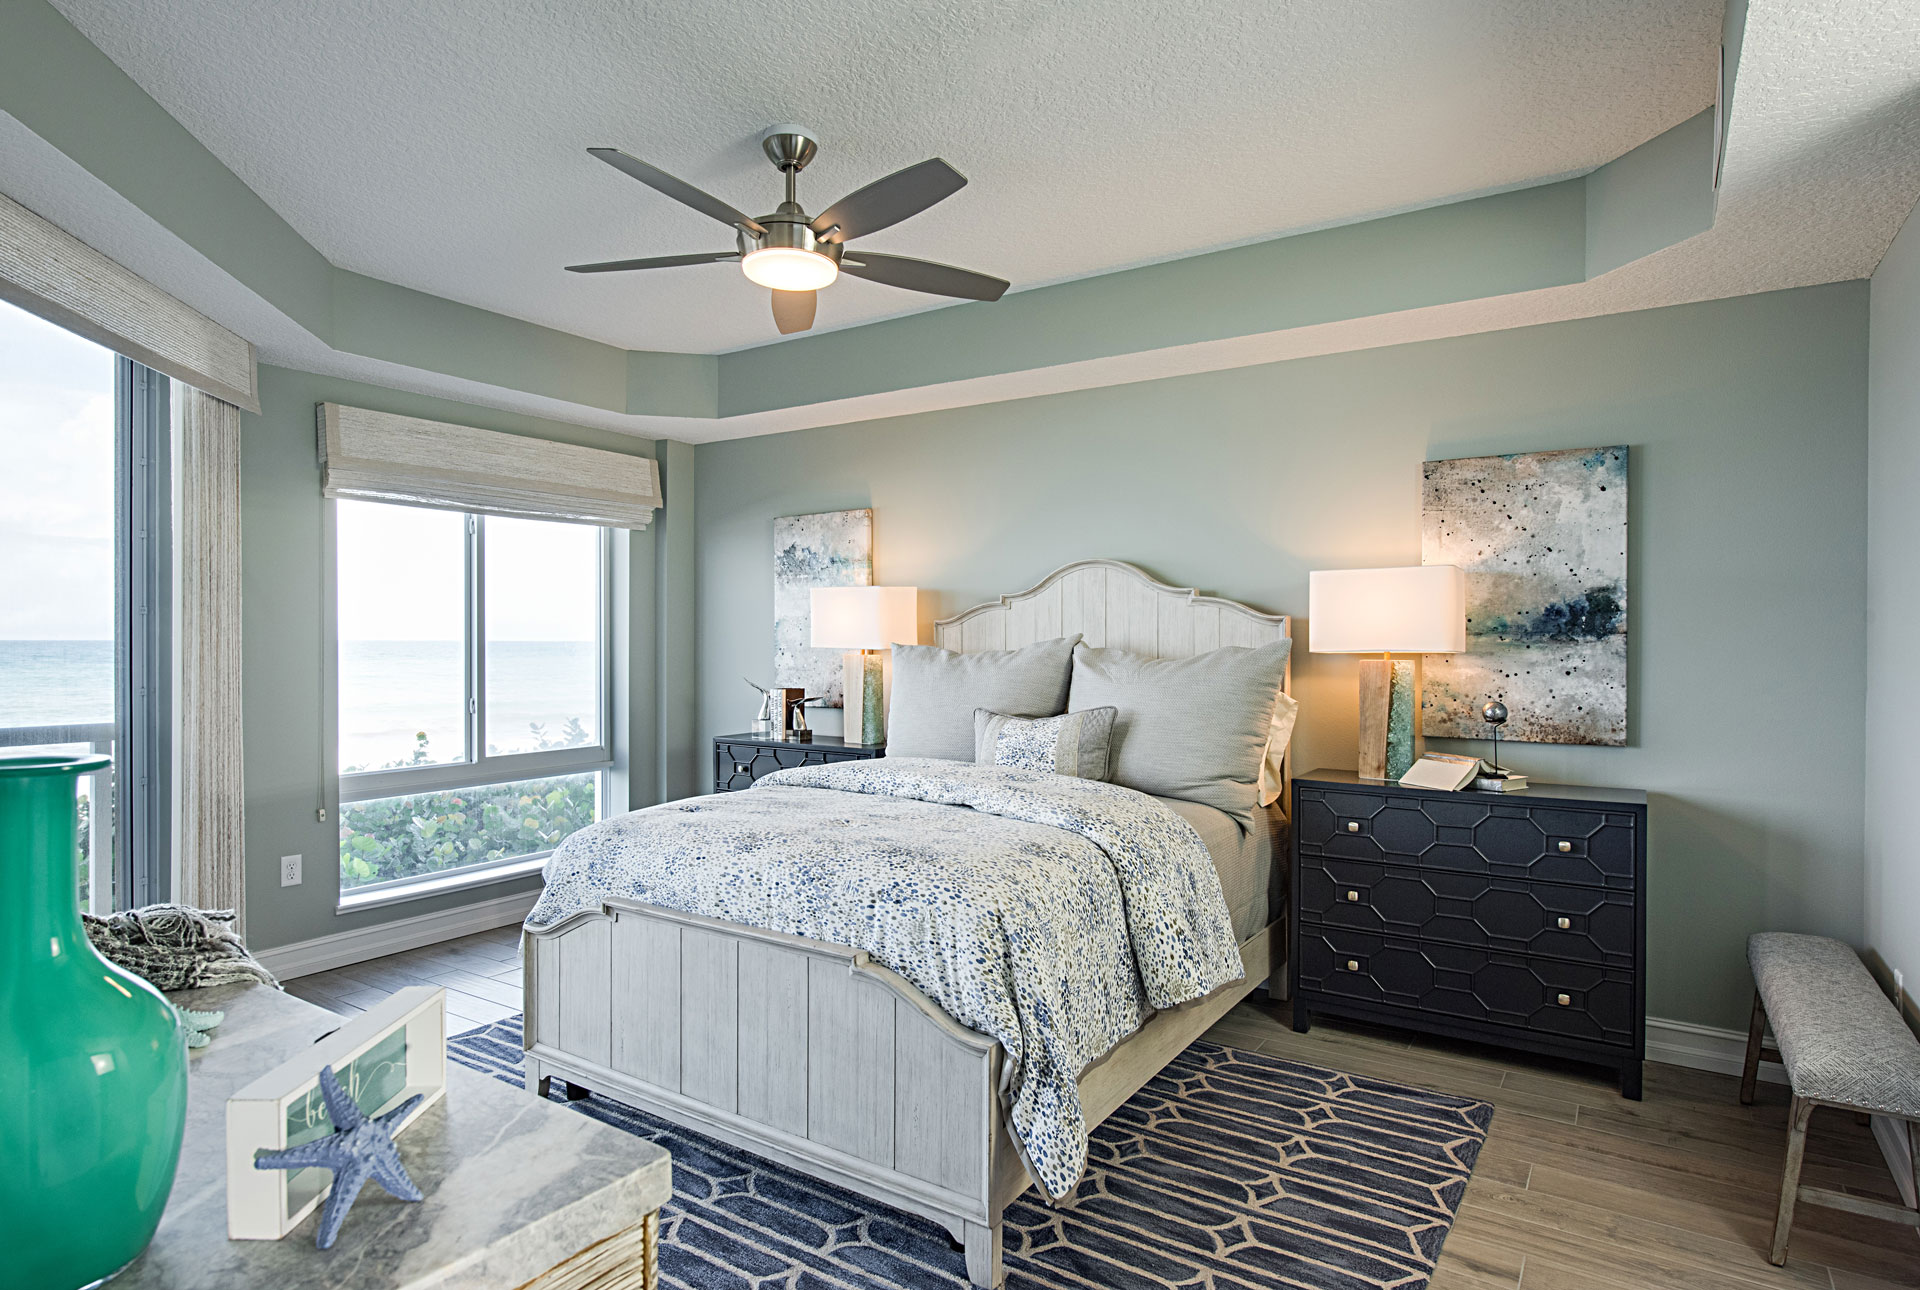 bedroom-beach-11-2019s